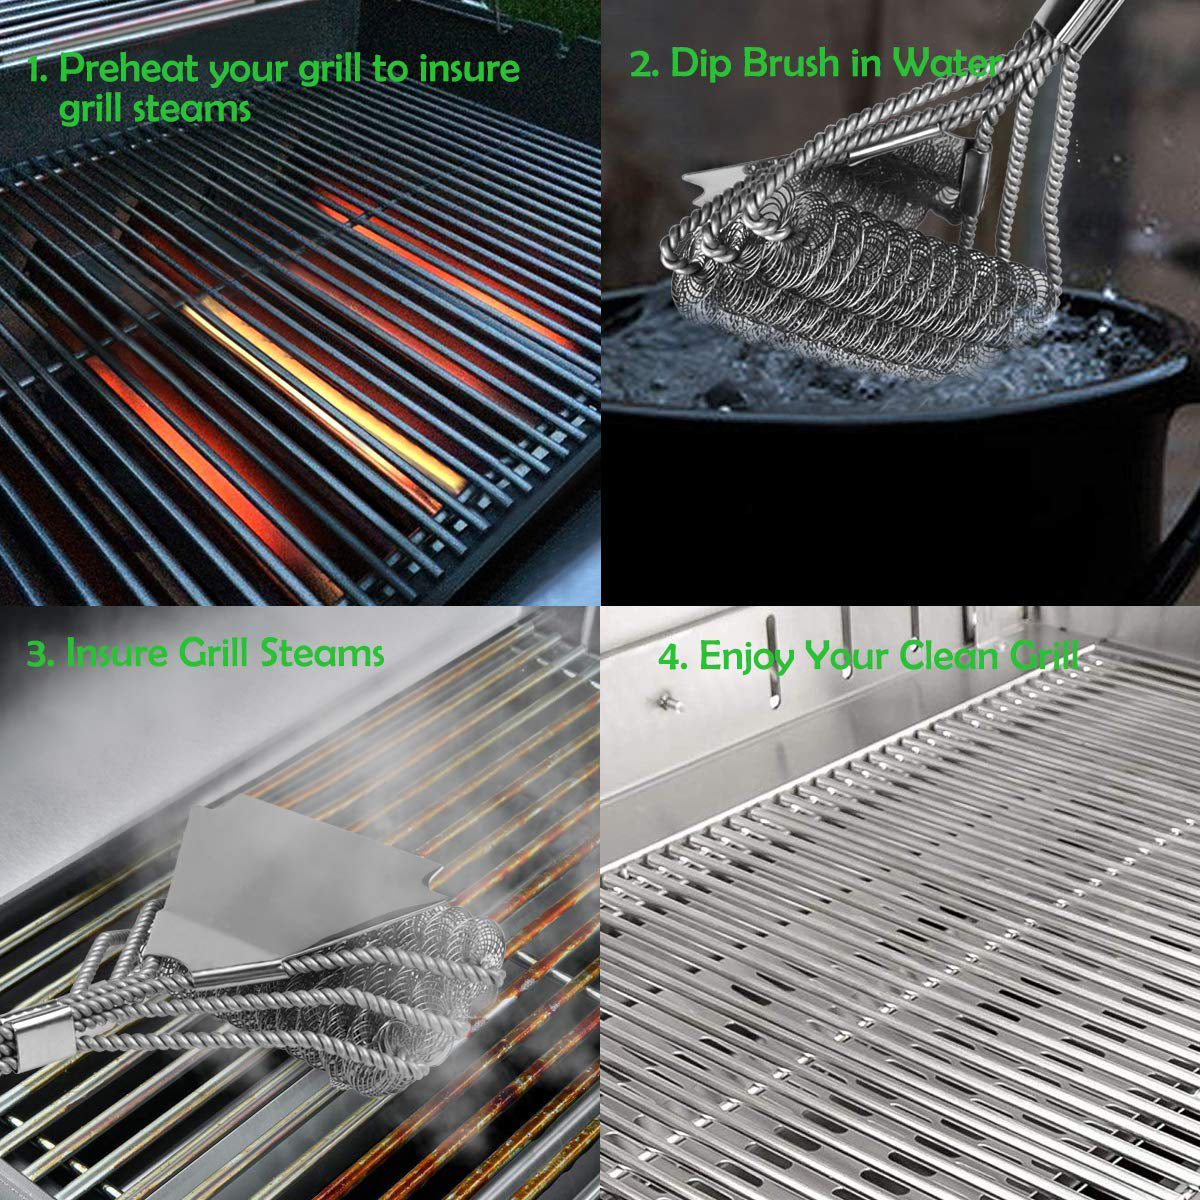 2018 Upgraded 3 in 1 Bristle Free BBQ Cleaning Brush, Stainless Safe Barbecue Cleaner Accessories Suitable for Porcelain, Ceramic, Steel, Iron All Grills